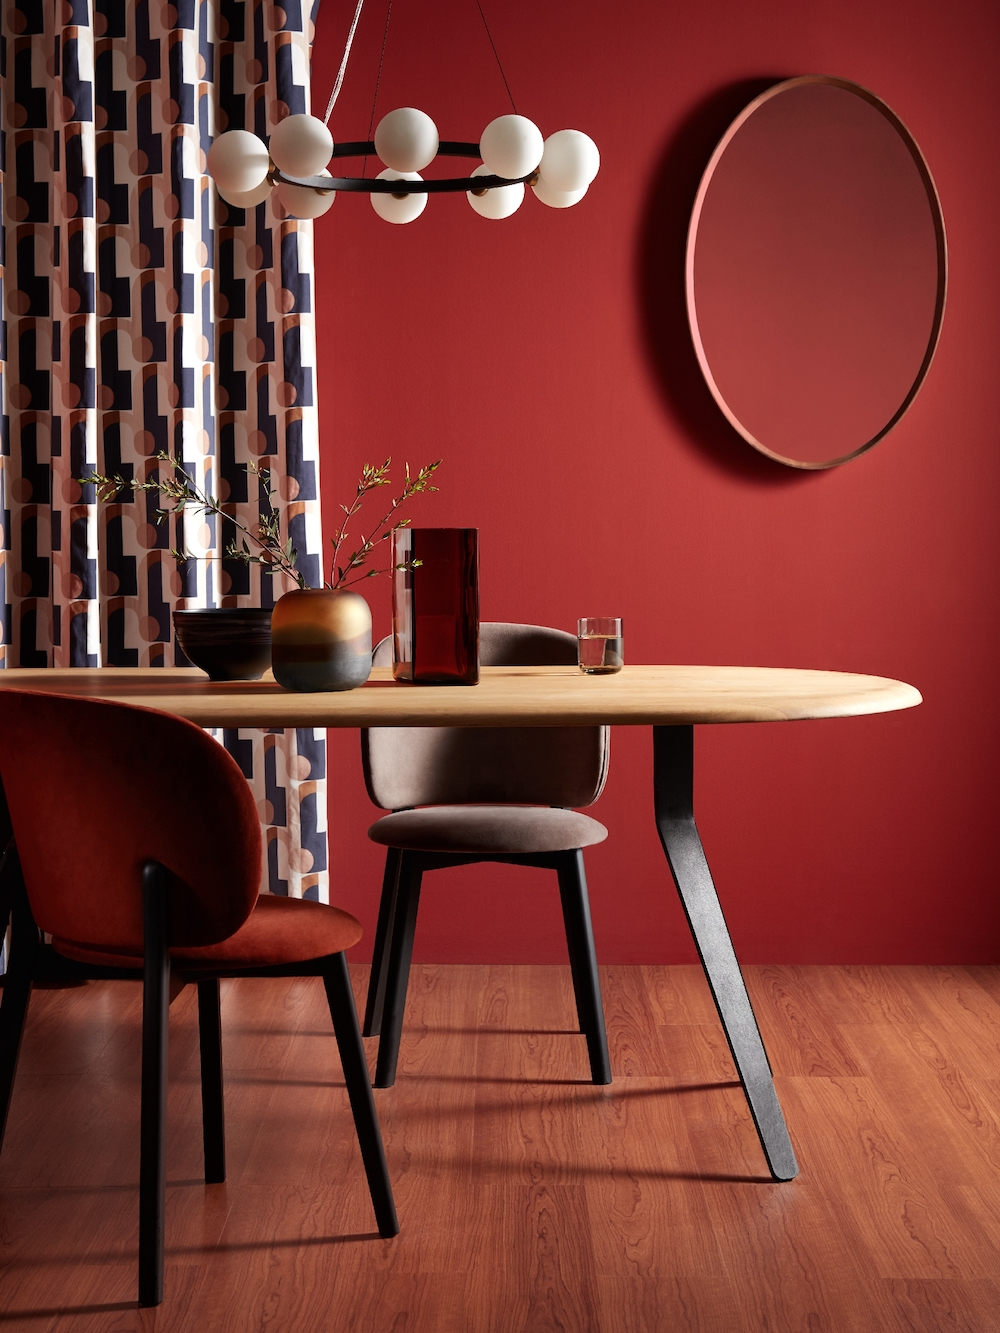 Design Project By John Lewis No.203 Upholstered Side Chair, £299; Design Project By John Lewis No.203 Upholstered Side Chair, £299; Design Project by John Lewis No.169 8 Seater Dining Table, Oak, £999; Arcade Night Sky Readymade Curtain, £80 / £120; Matinee 10 light ceiling hoop, £295; Astrid Walnut Oval, £299; 3 Tone Glass Multi Small, £40; Iittala Ruutu Vase, H26.5cm, Copper, £190